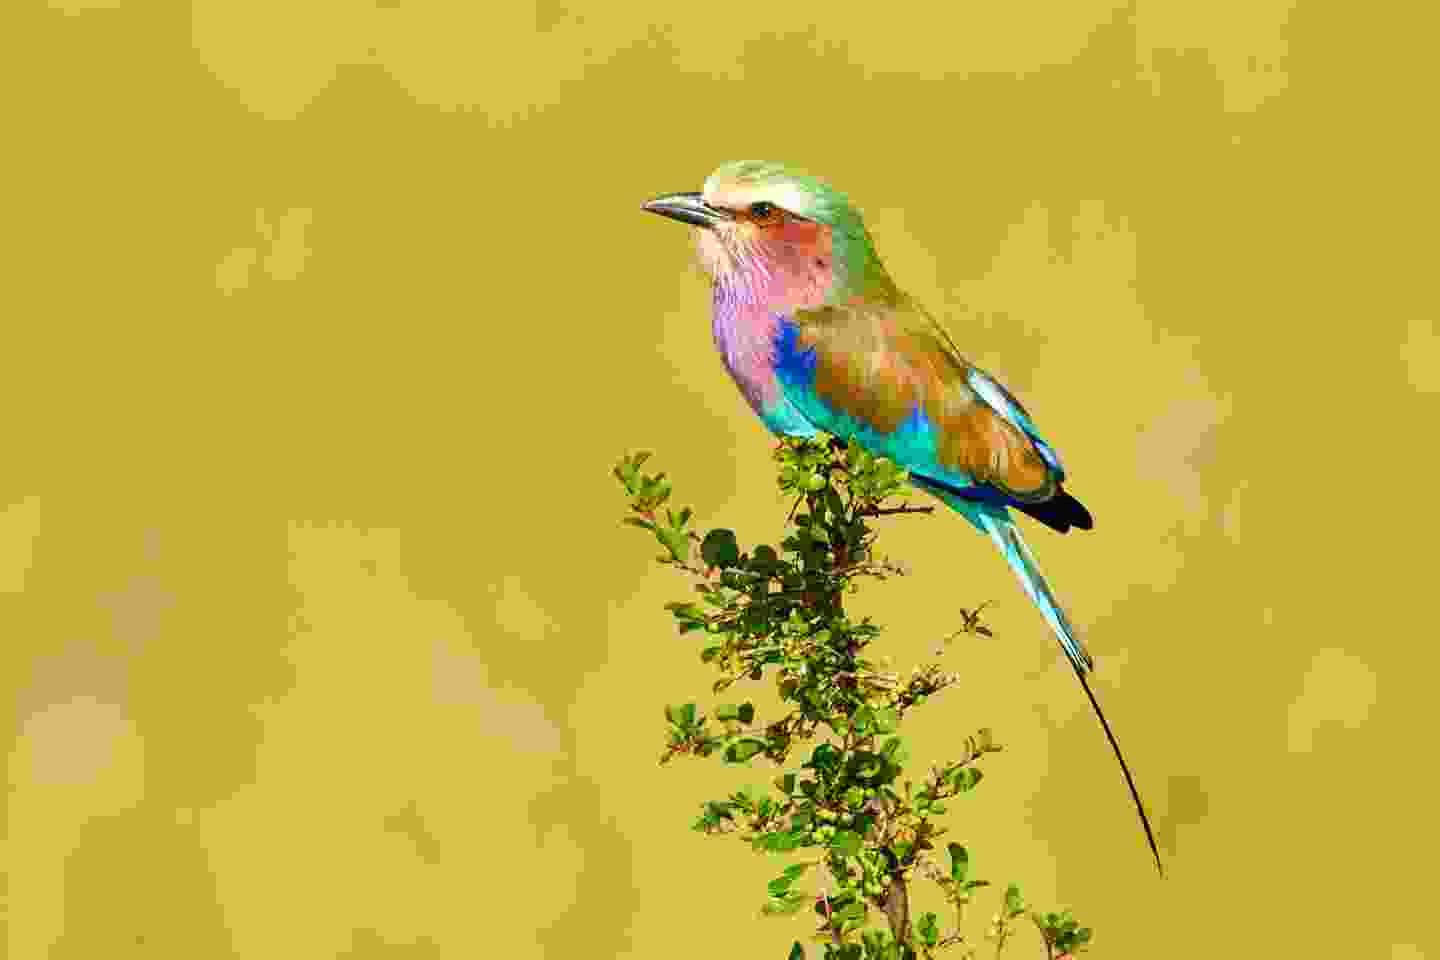 Lilac-breasted roller (Shutterstock)